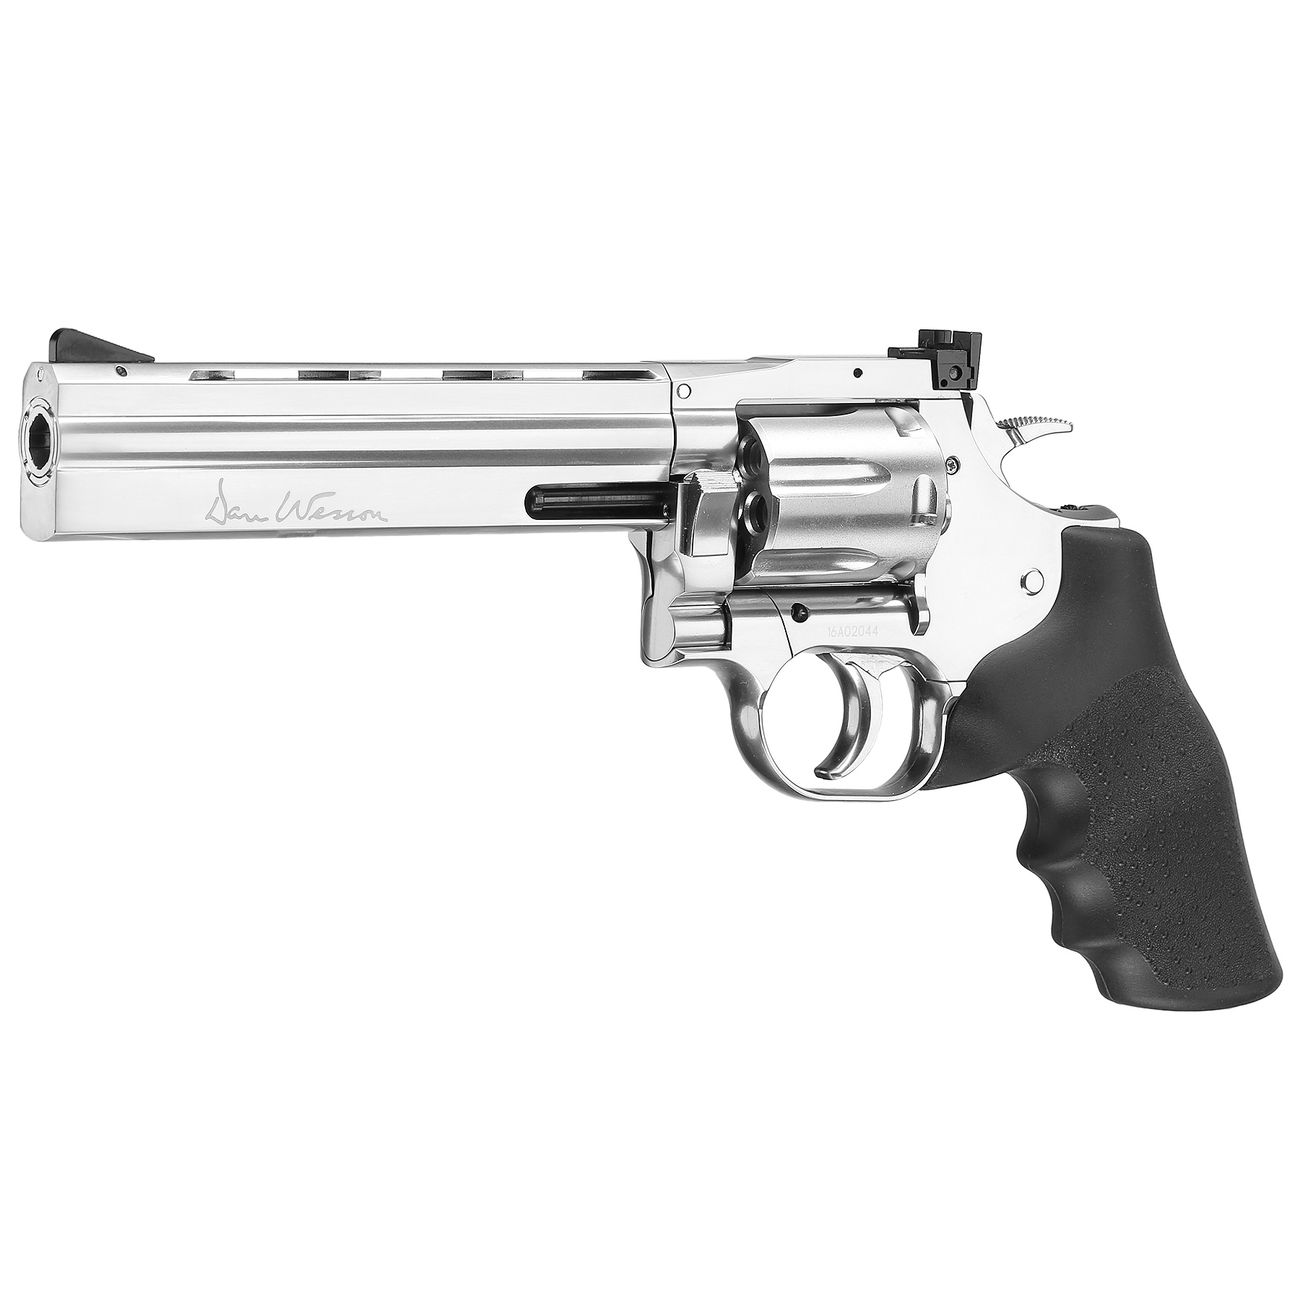 ASG Dan Wesson 715 6 Zoll Revolver Vollmetall CO2 6mm BB chrom Low Power Version 0